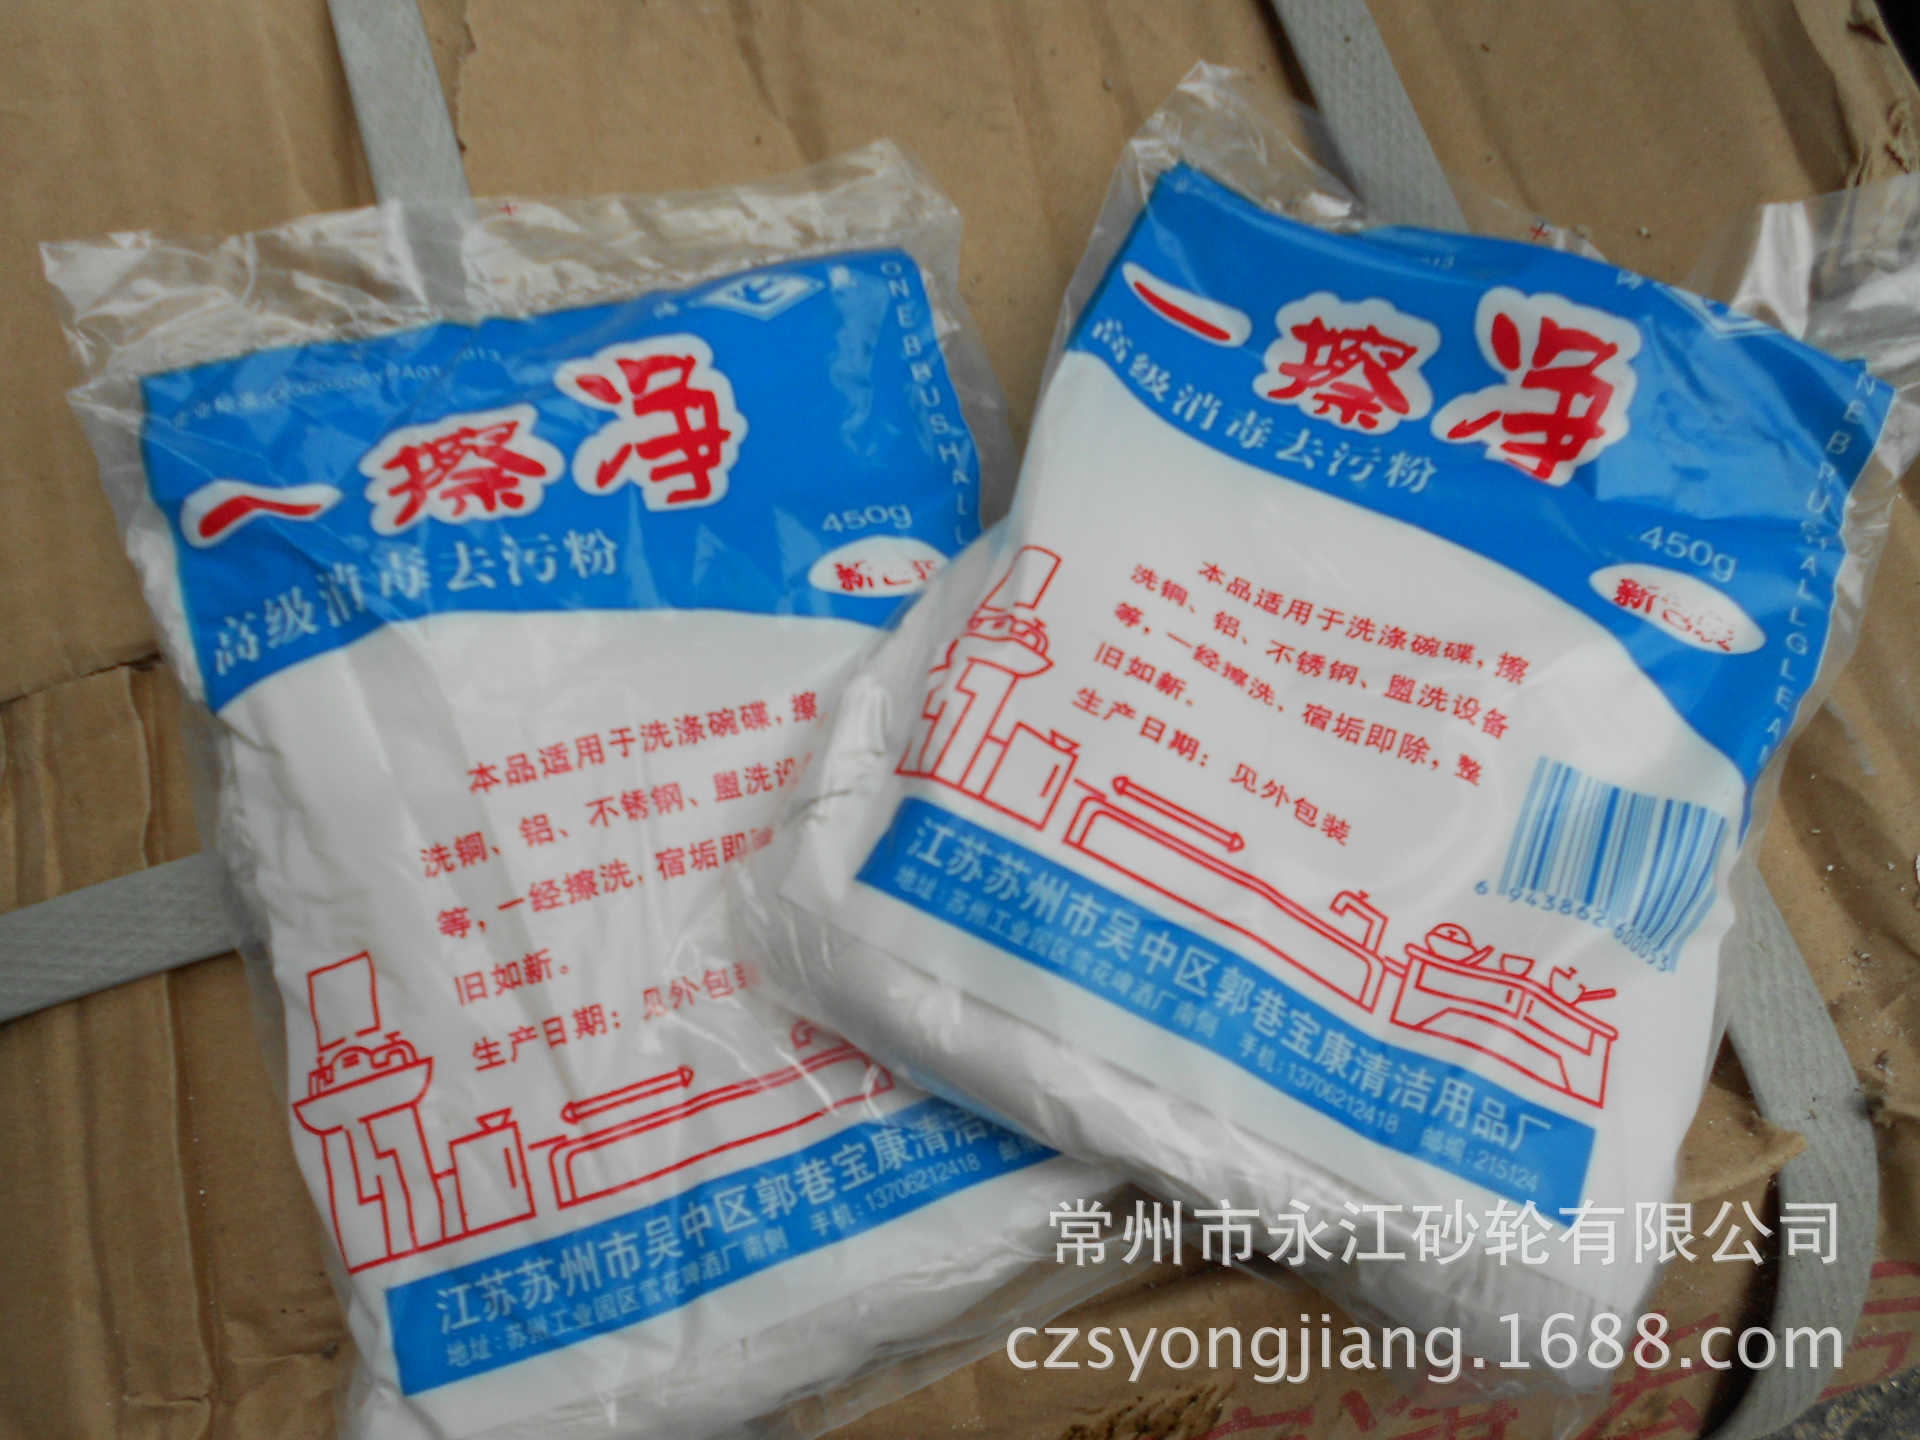 Swallow Card Decontamination Powder Supply A Wipe Decontamination Powder Bag A Wipe Bottled Detergent Powder Wholesale